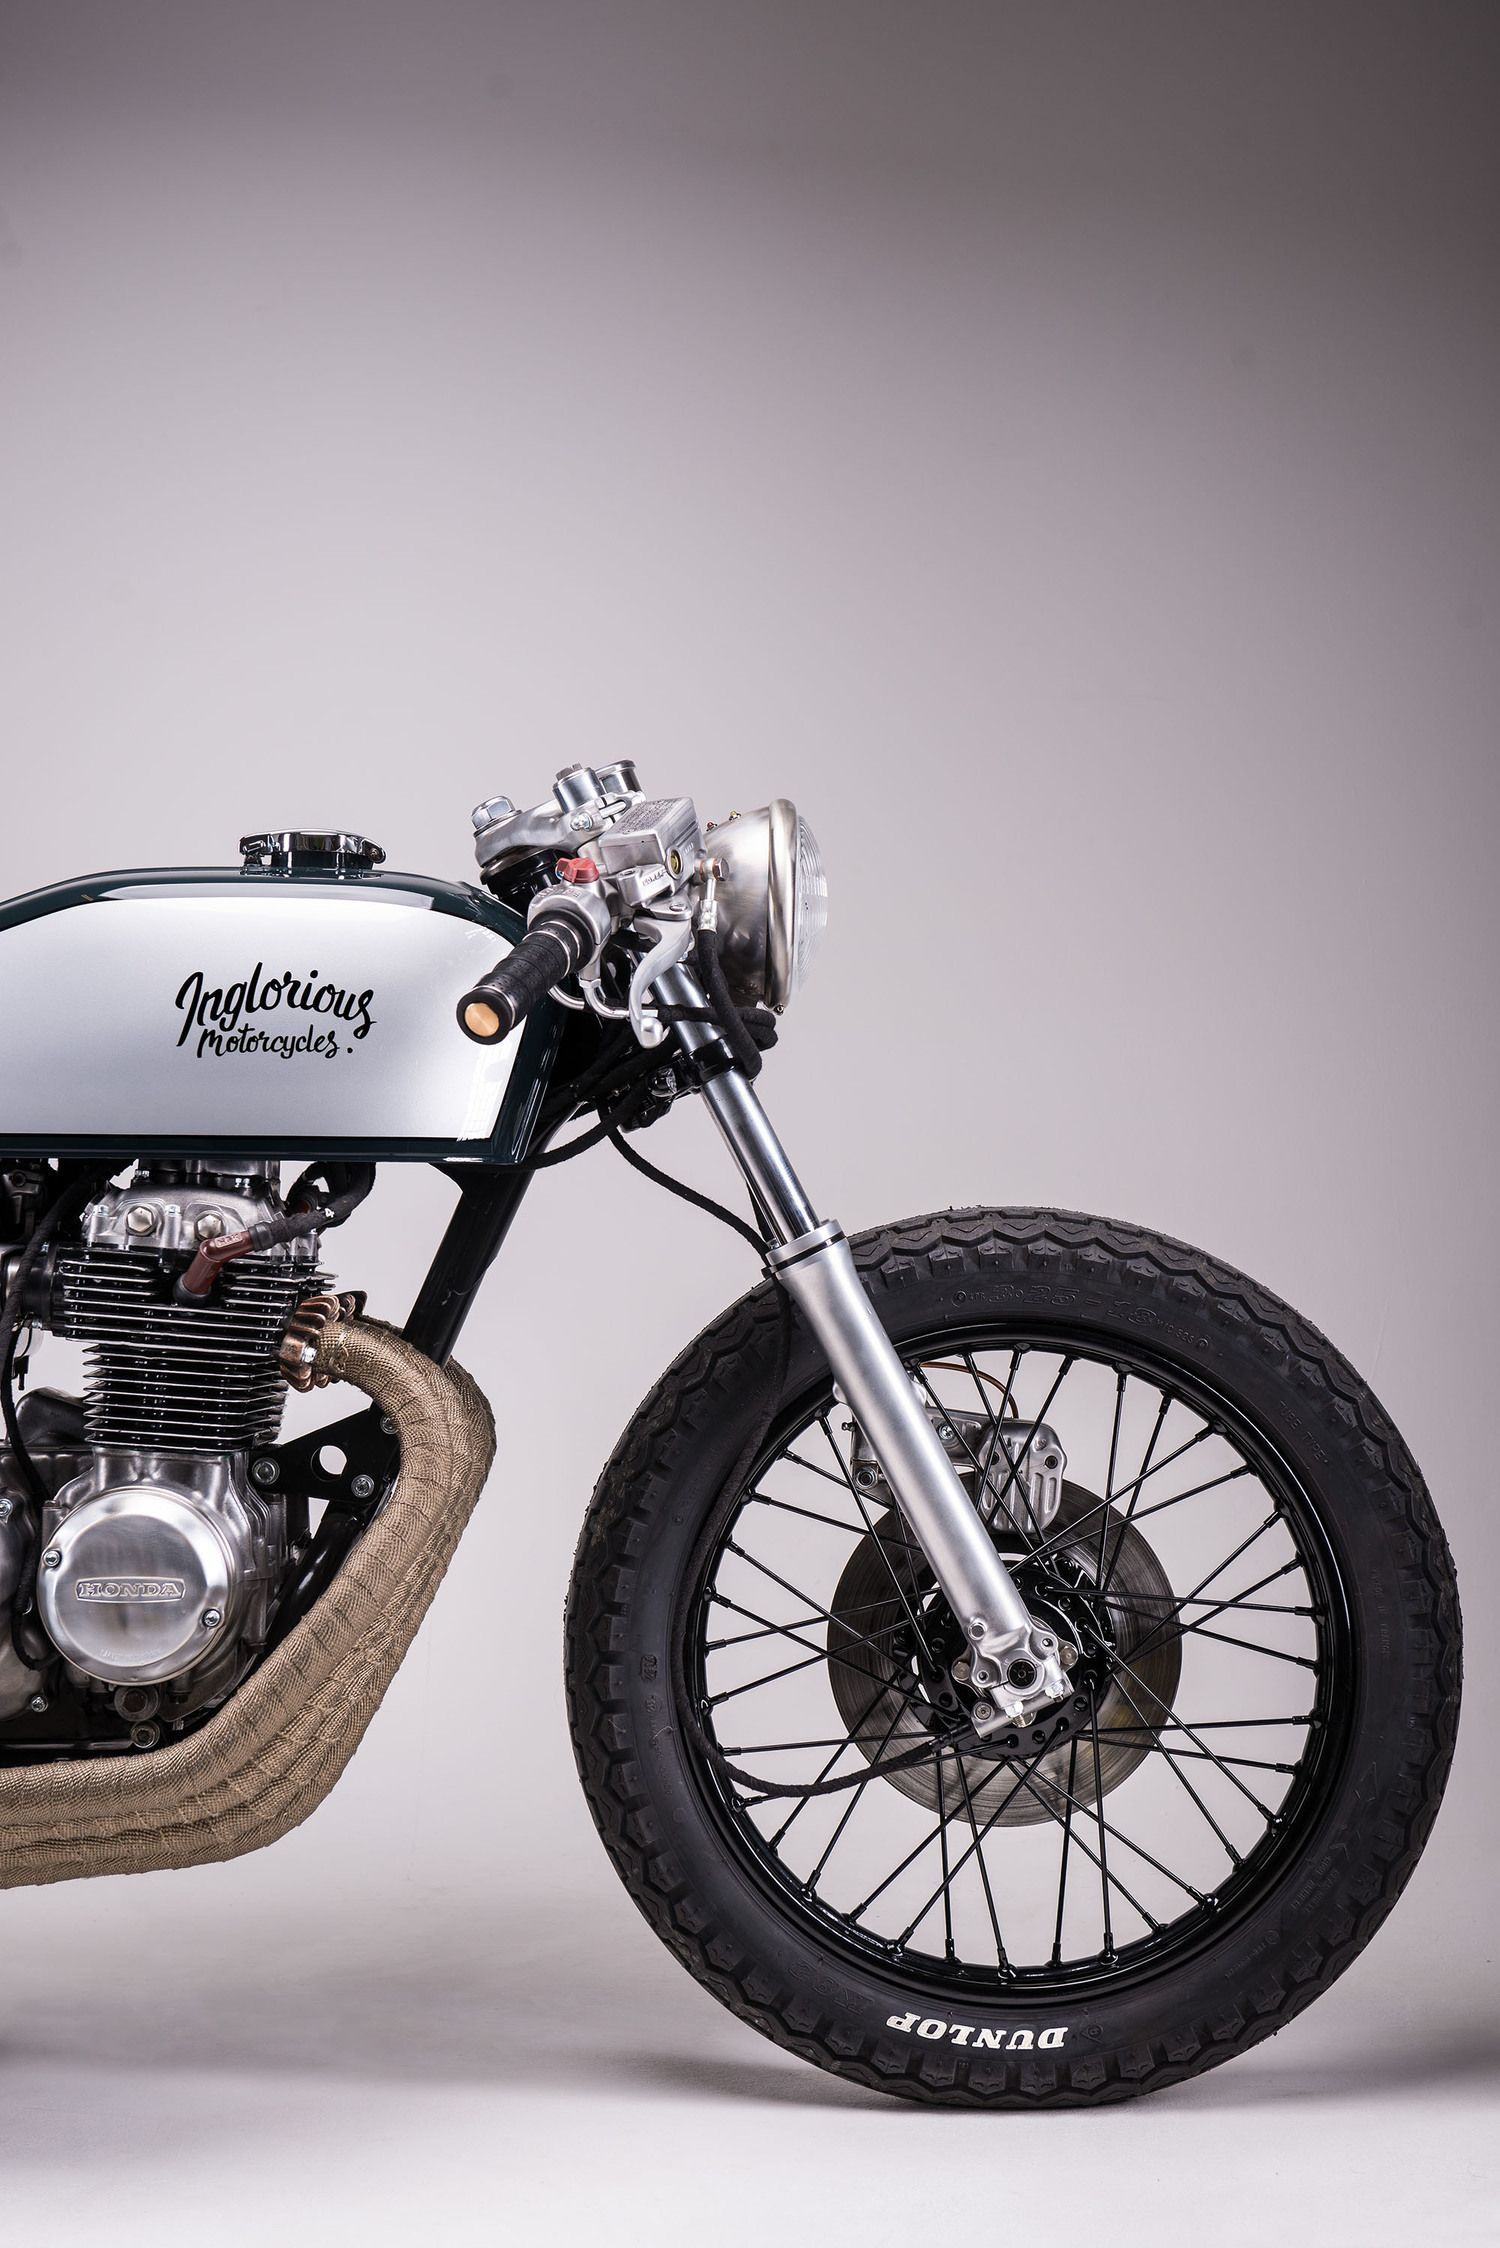 Inglorious Motorcycles CB400 13